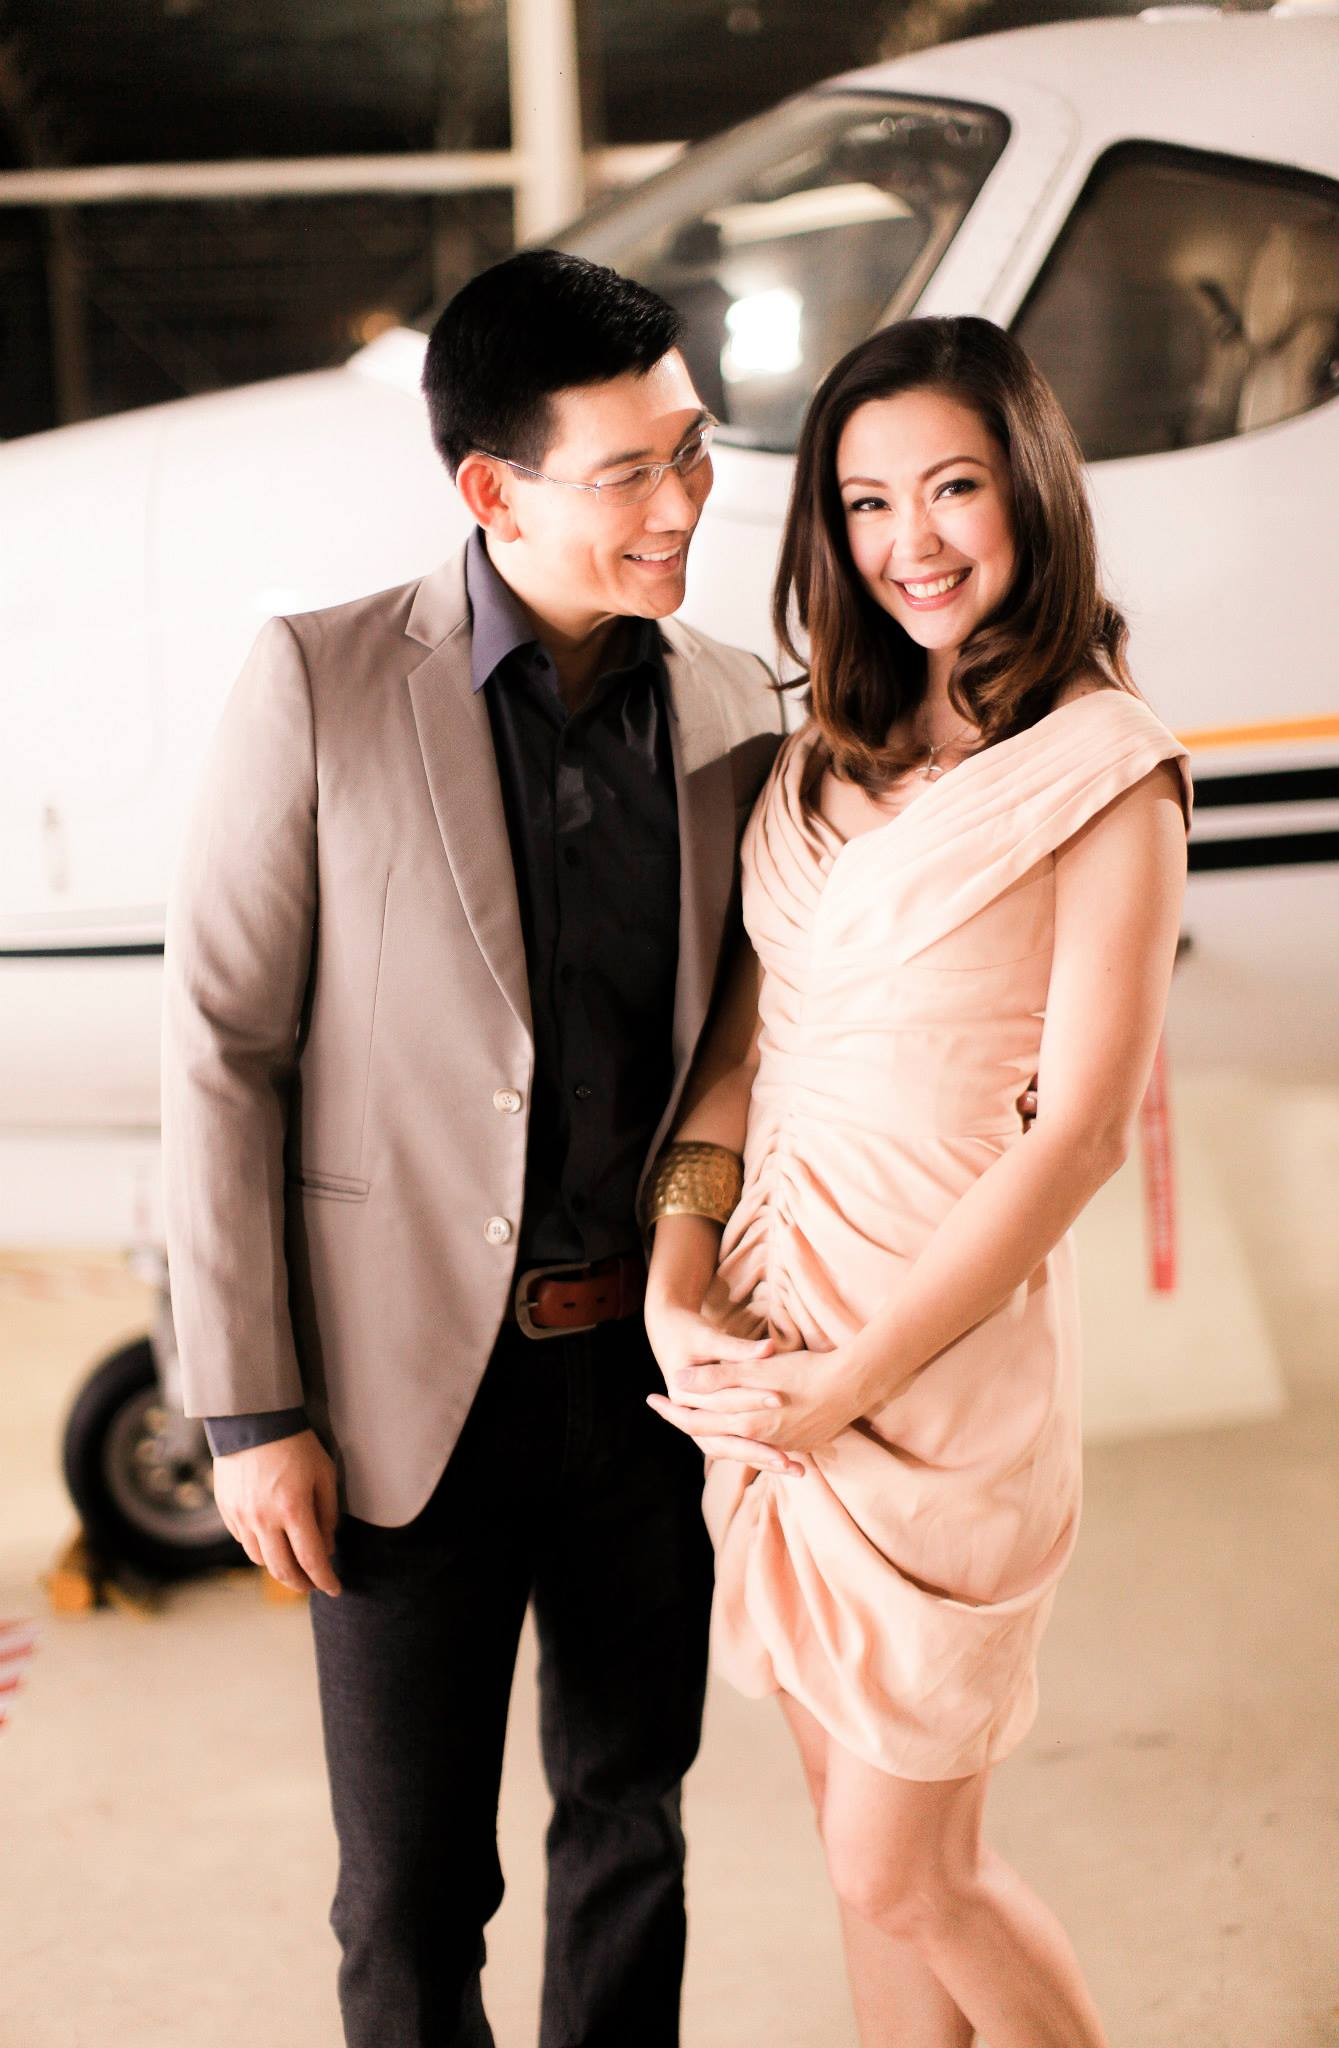 Be Careful with My Heart: Sir Chief and Maya Engagement